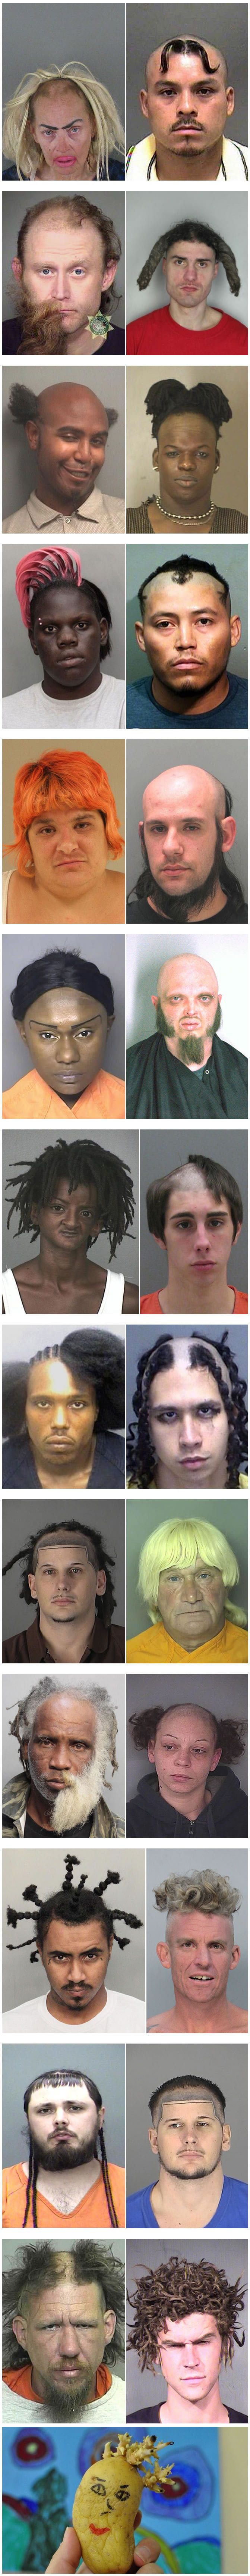 best 25+ funny mugshots ideas on pinterest | poetry funny, funny